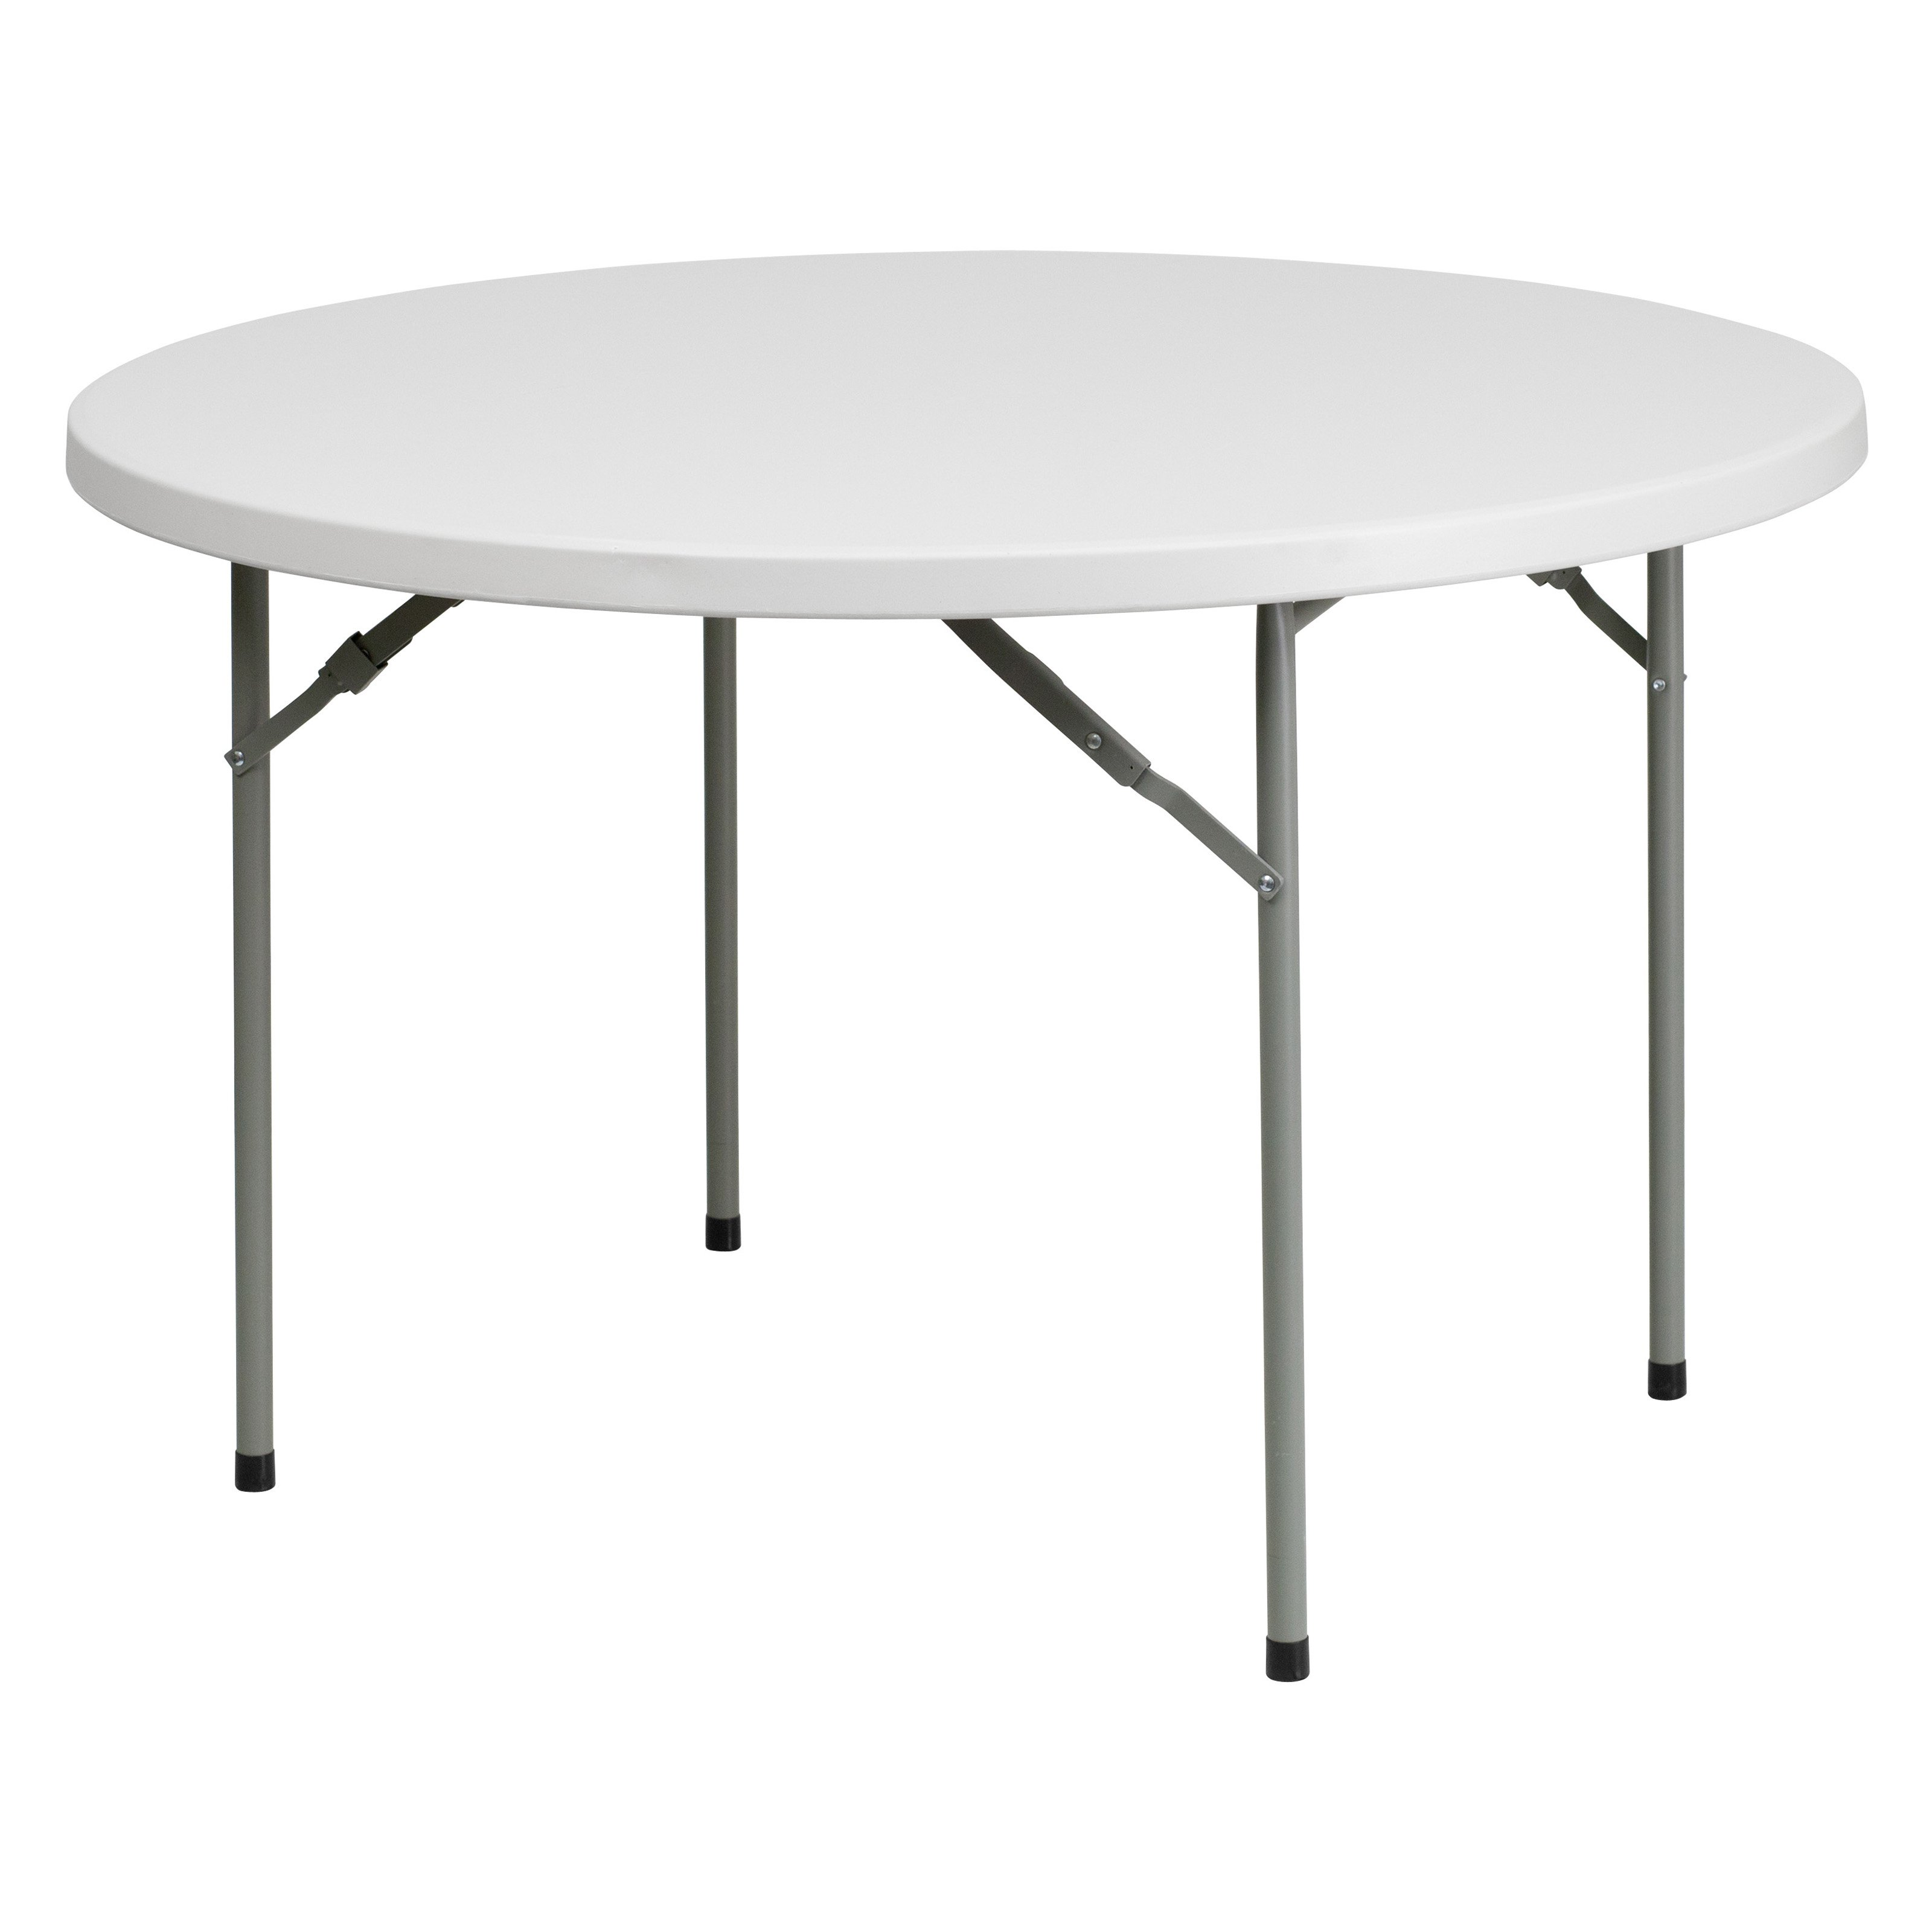 Flash Furniture 48'' Round Granite White Plastic Folding Table by Flash Furniture